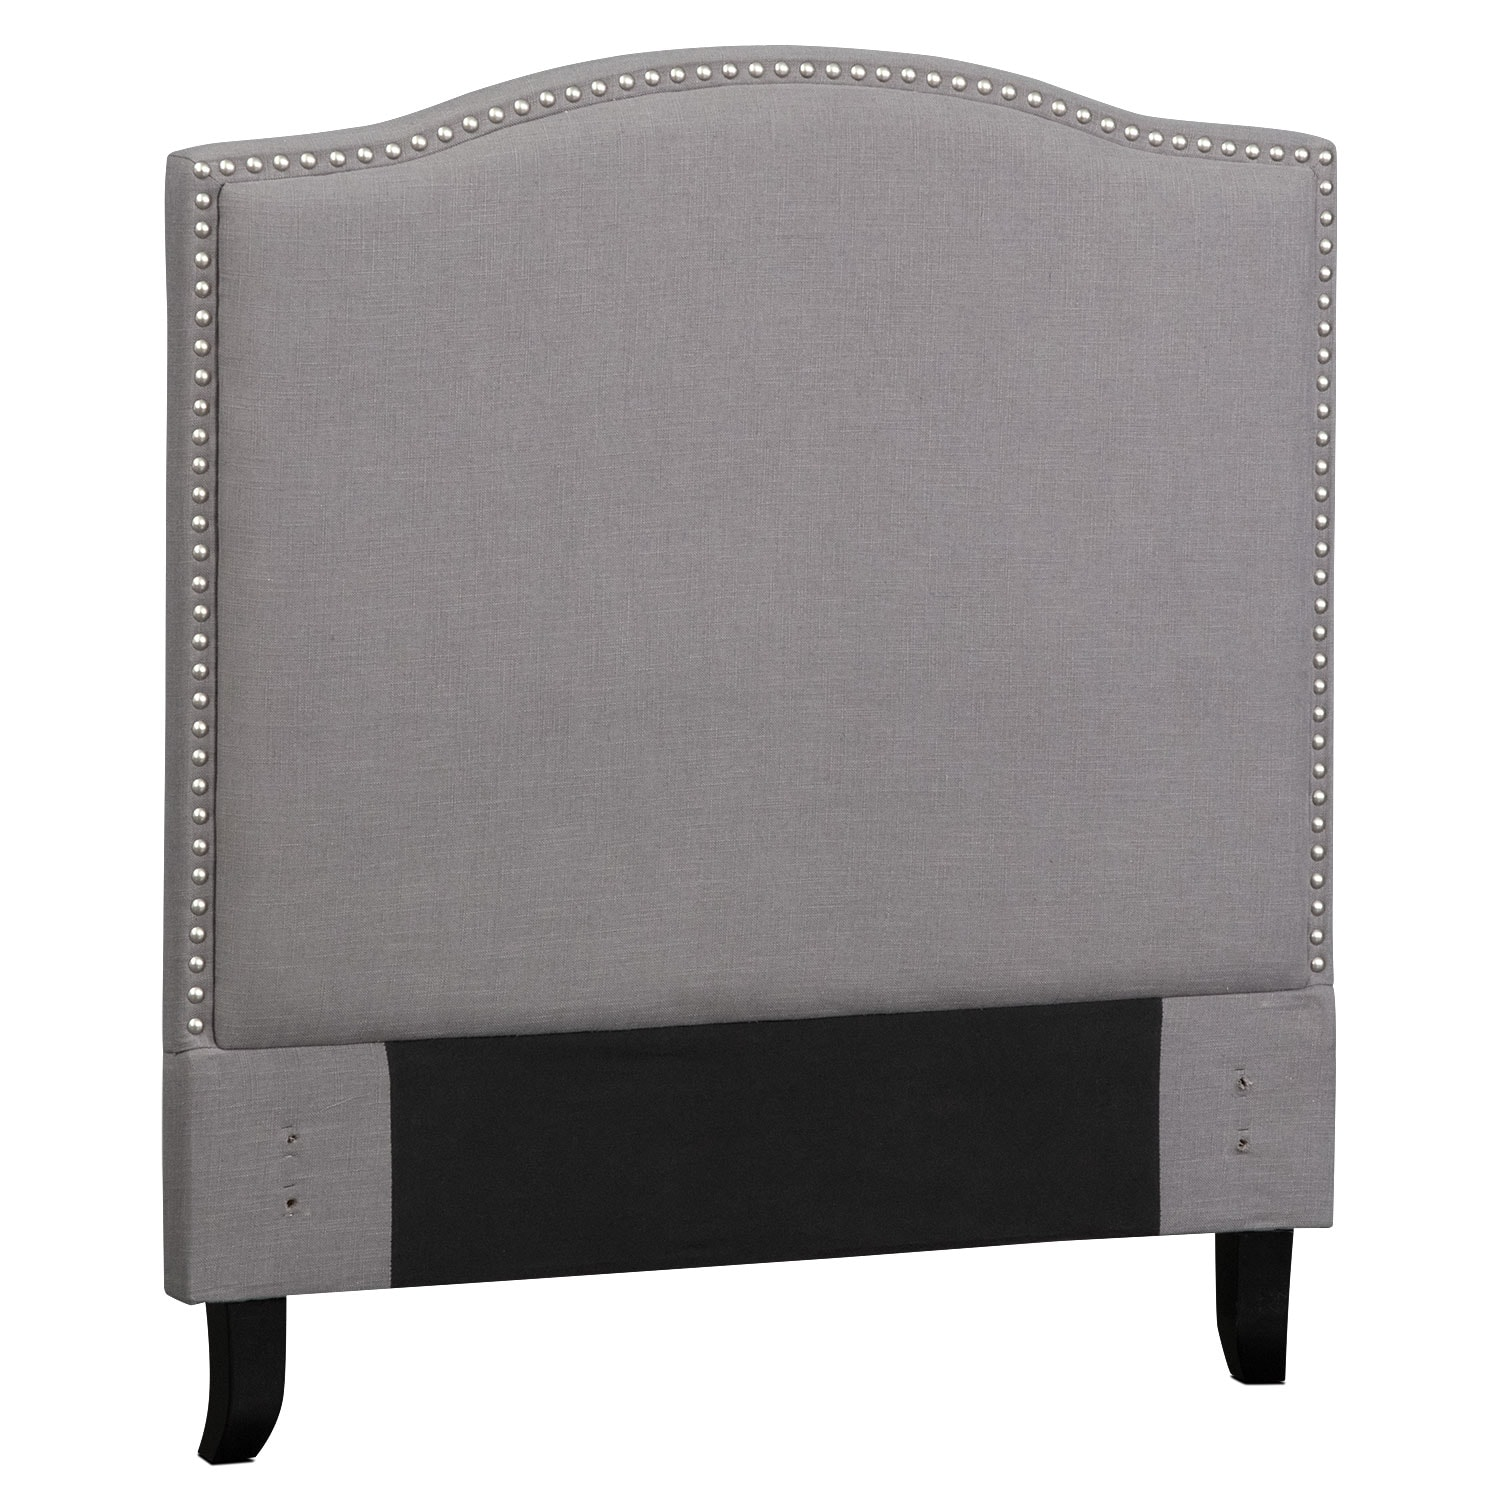 Aubrey twin upholstered headboard gray